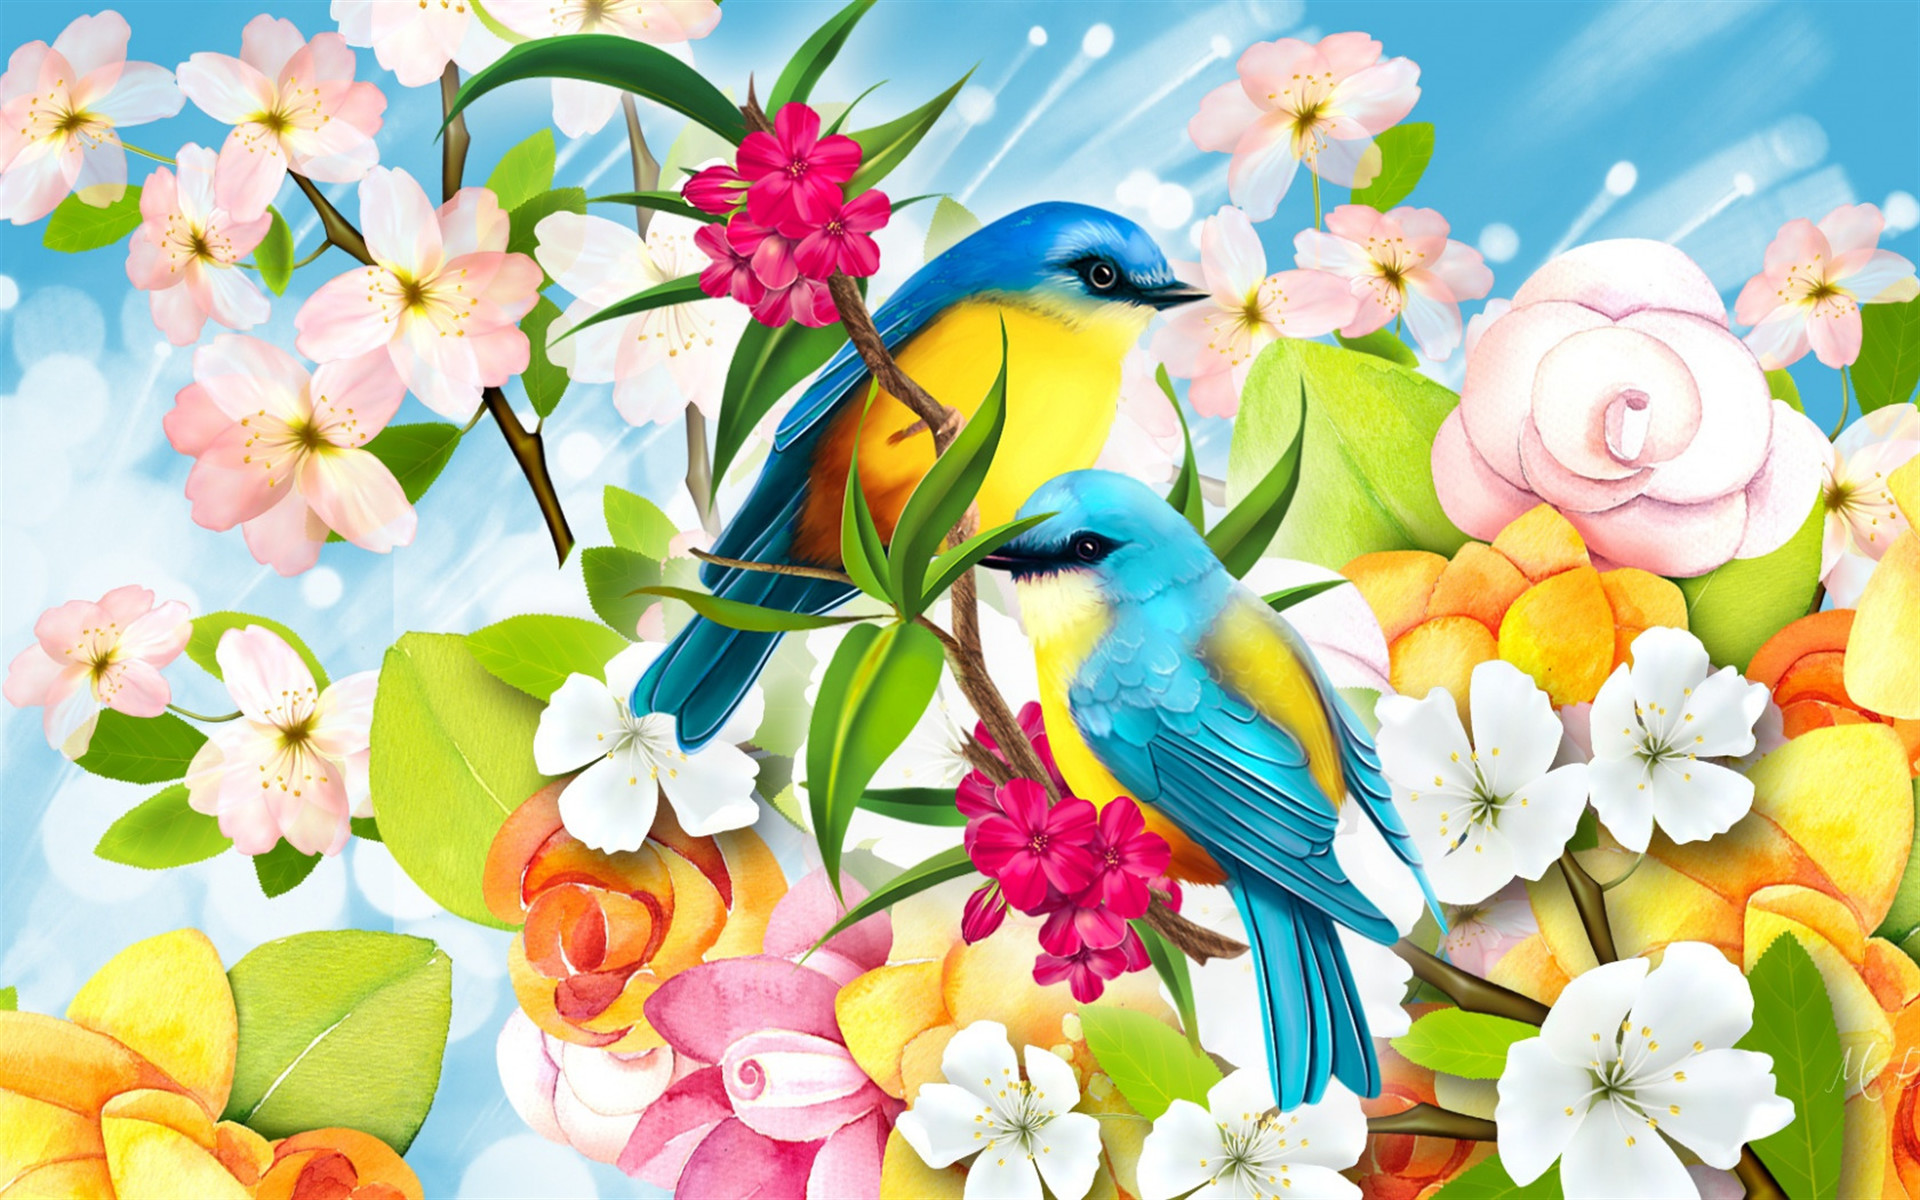 1920x1200 painted birds, blue-yellow birds, branch, drawing, art, spring flowers